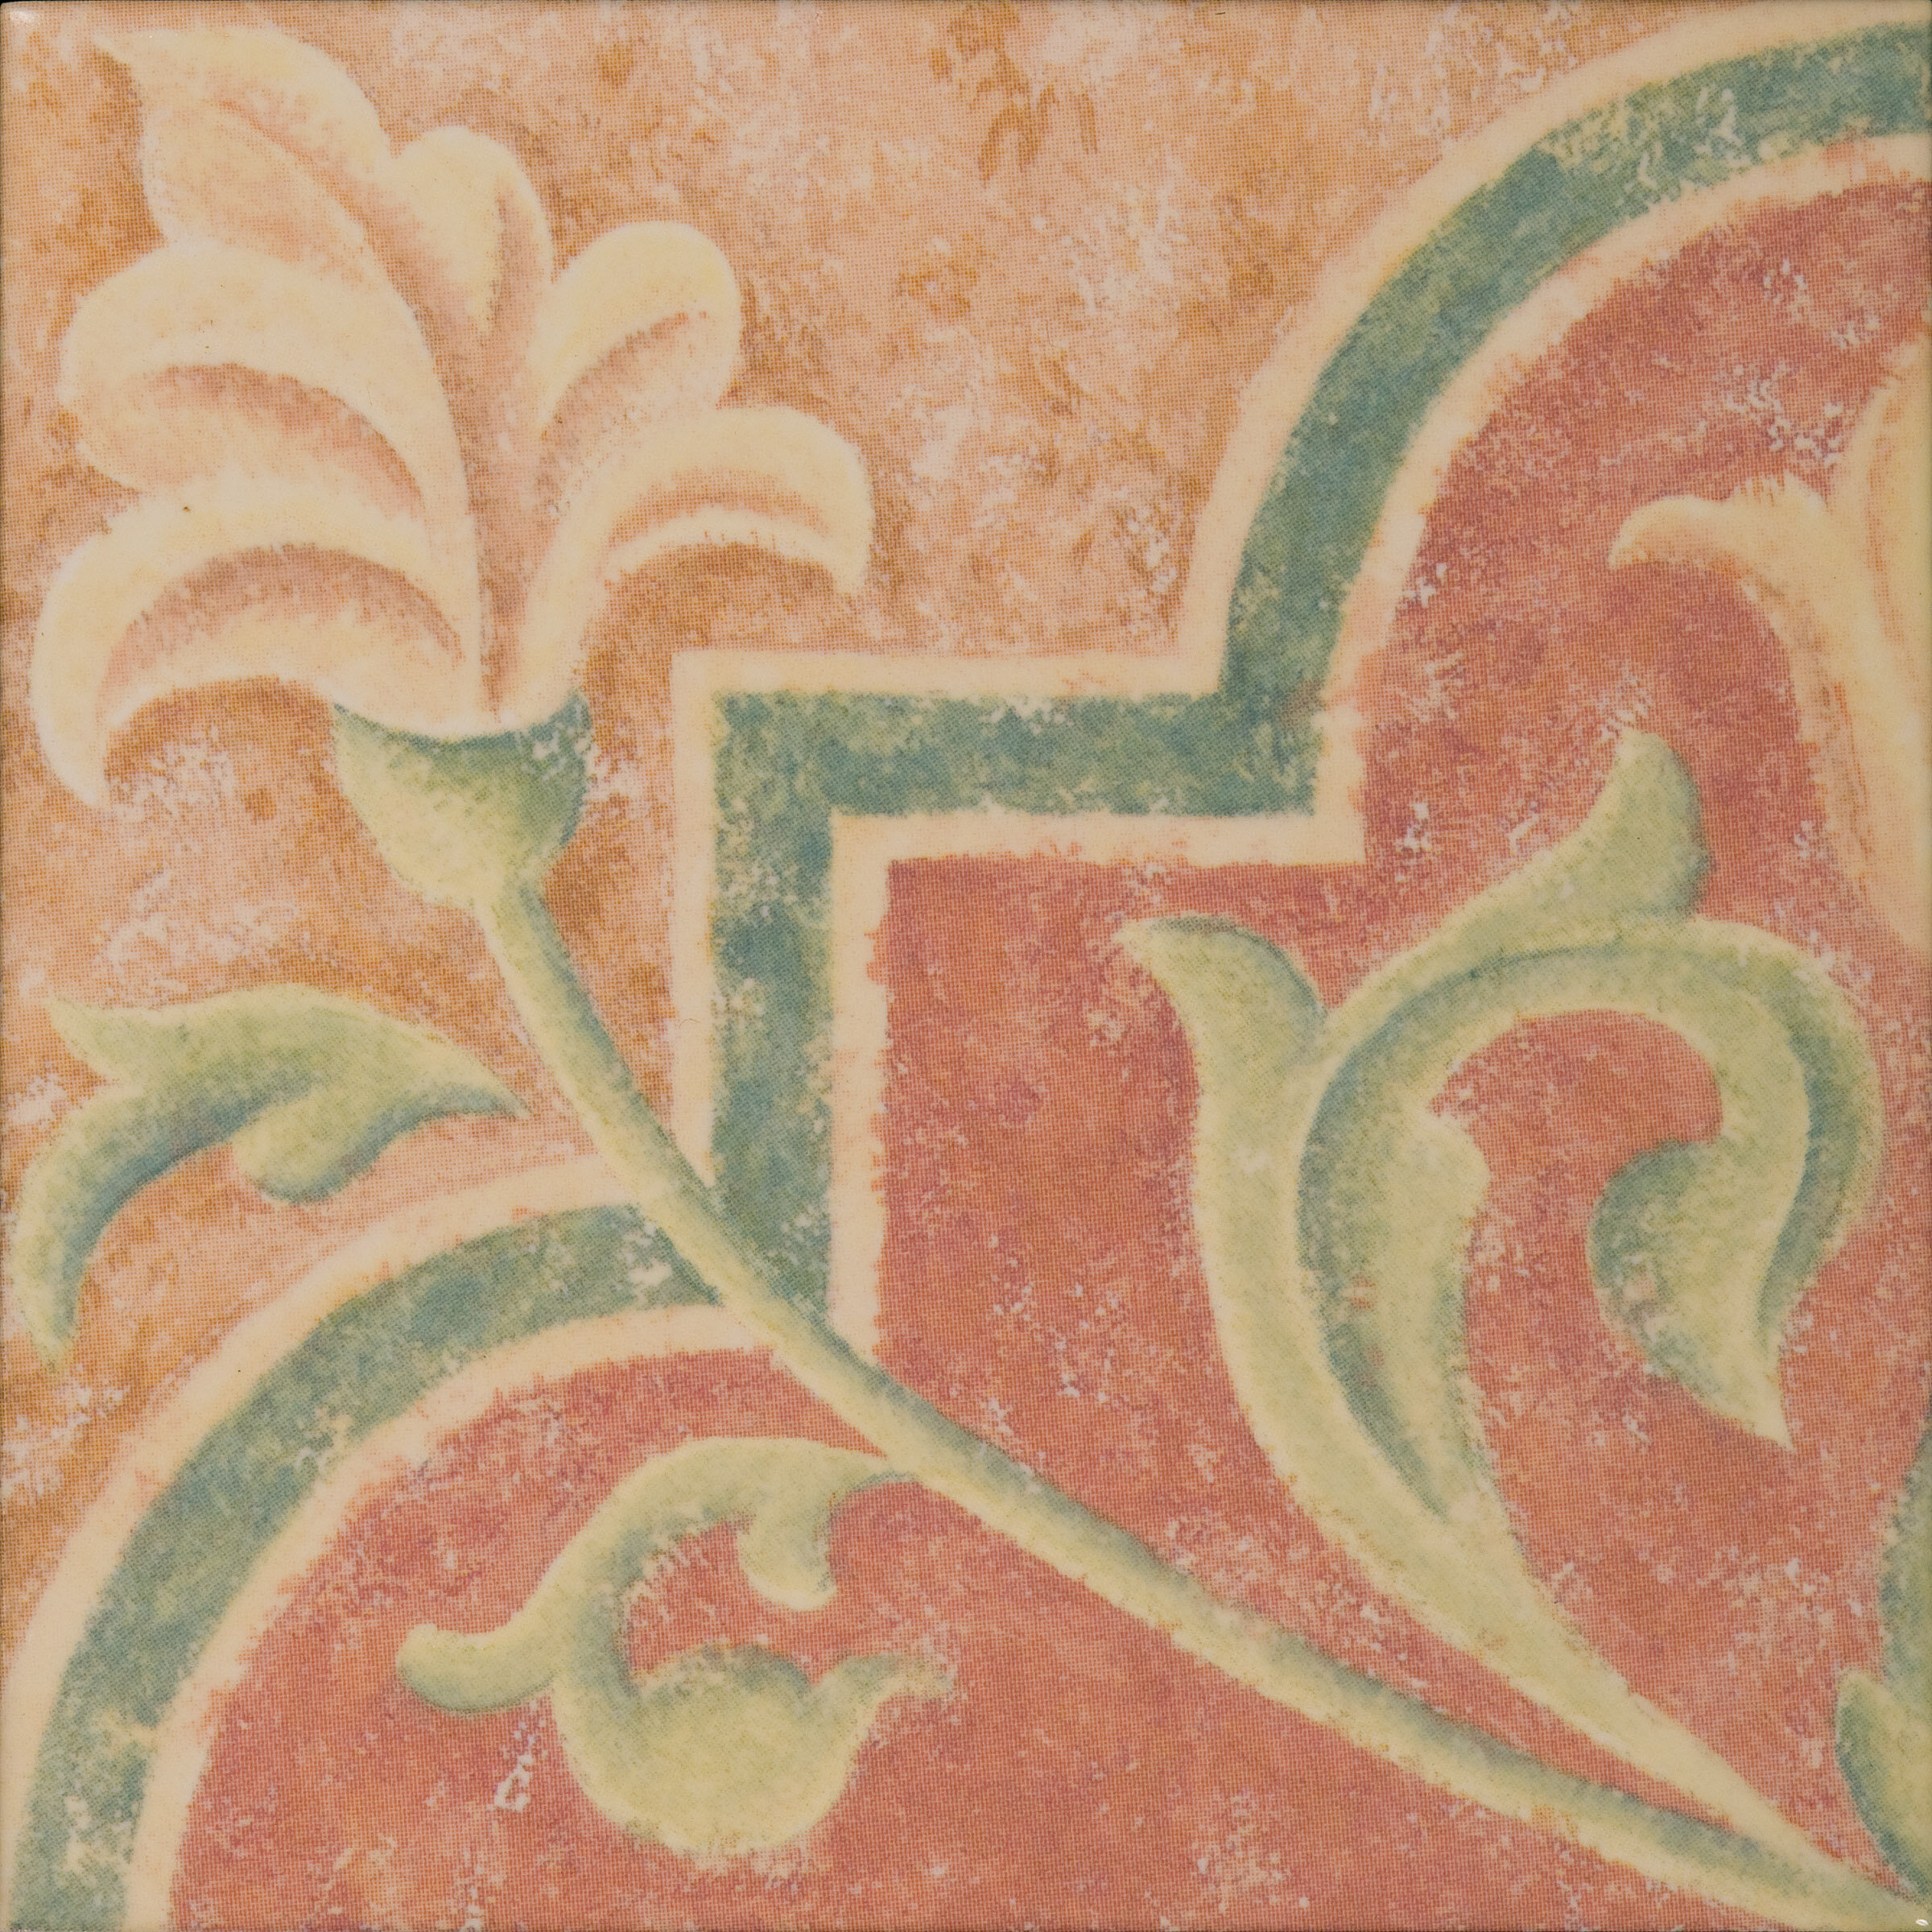 Mediterranean 4 X 4 Ceramic Terracotta Fresco Decorative Accent Tile In Brown Red